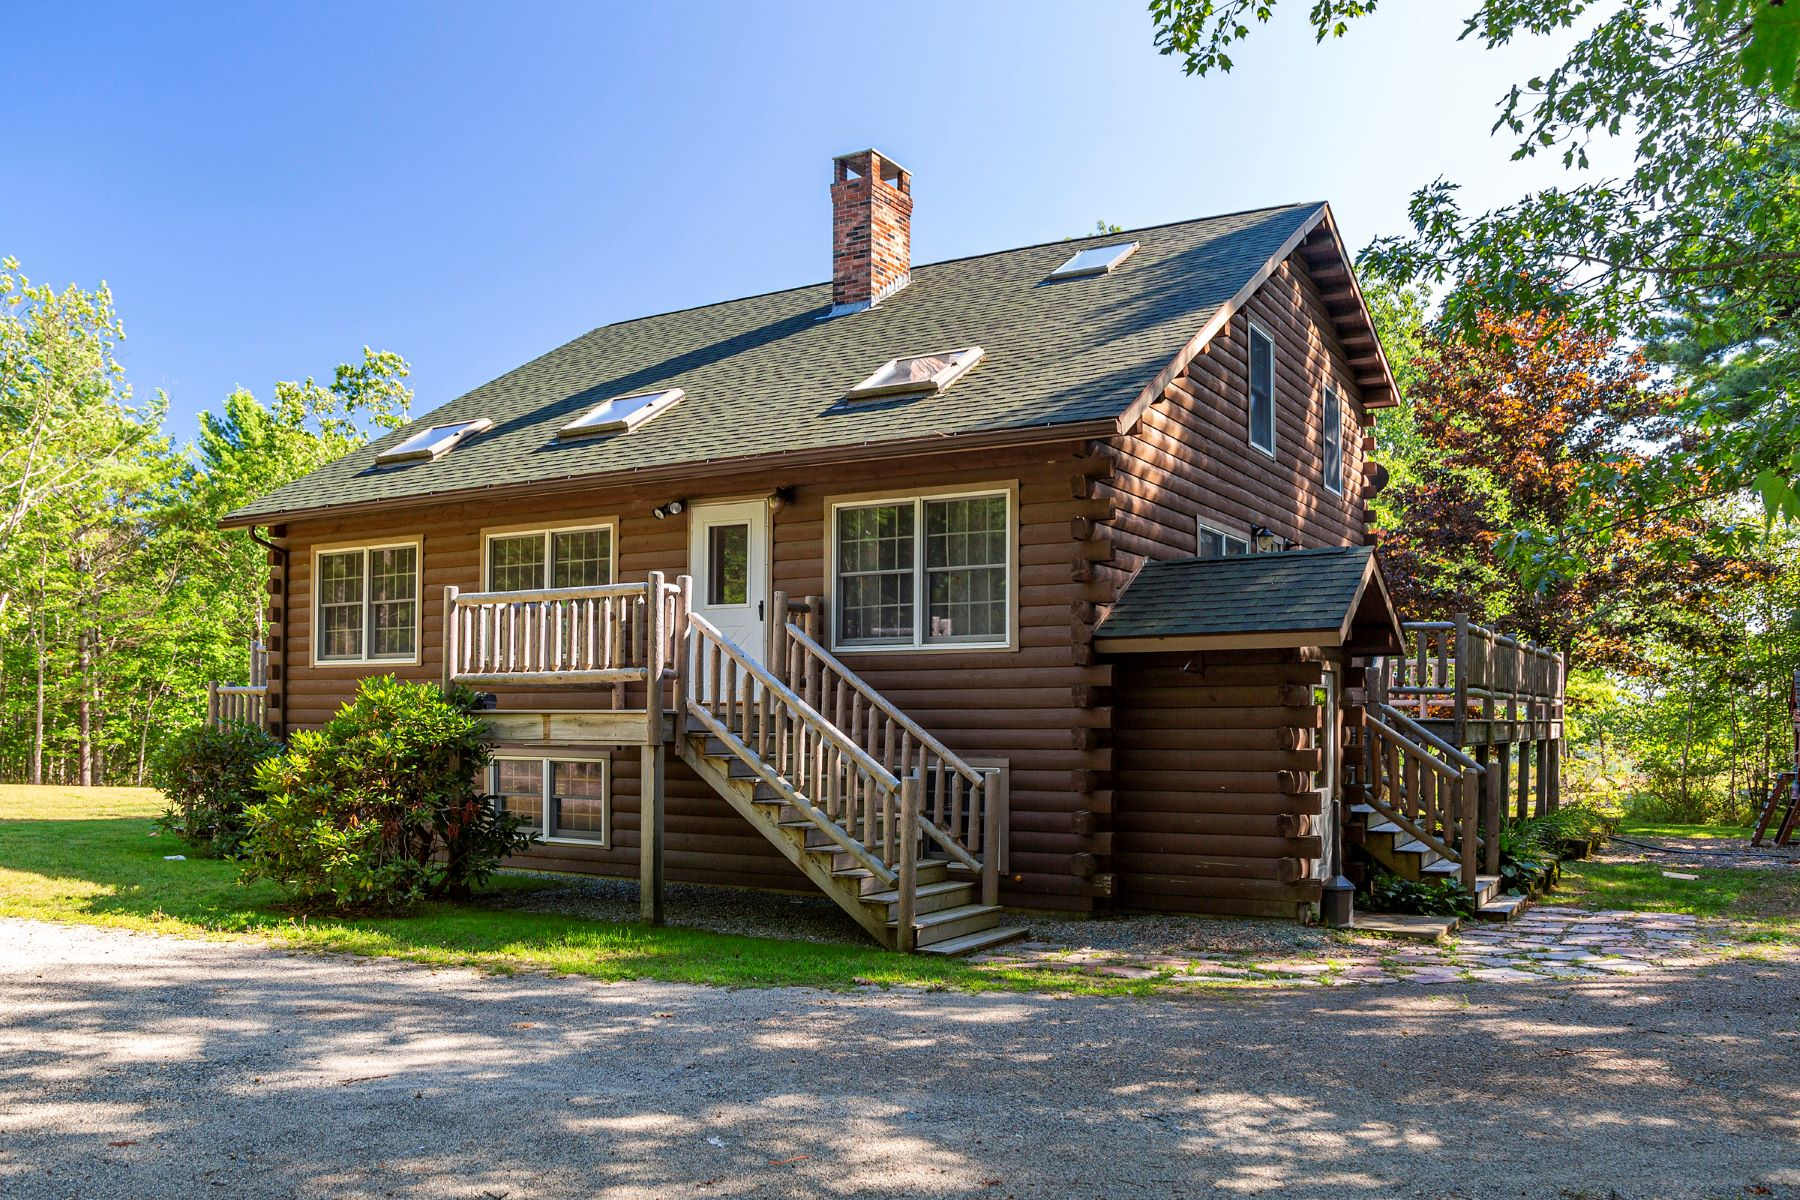 Single Family Homes for Sale at 7 Log Cabin Road Bar Harbor, Maine 04609 United States